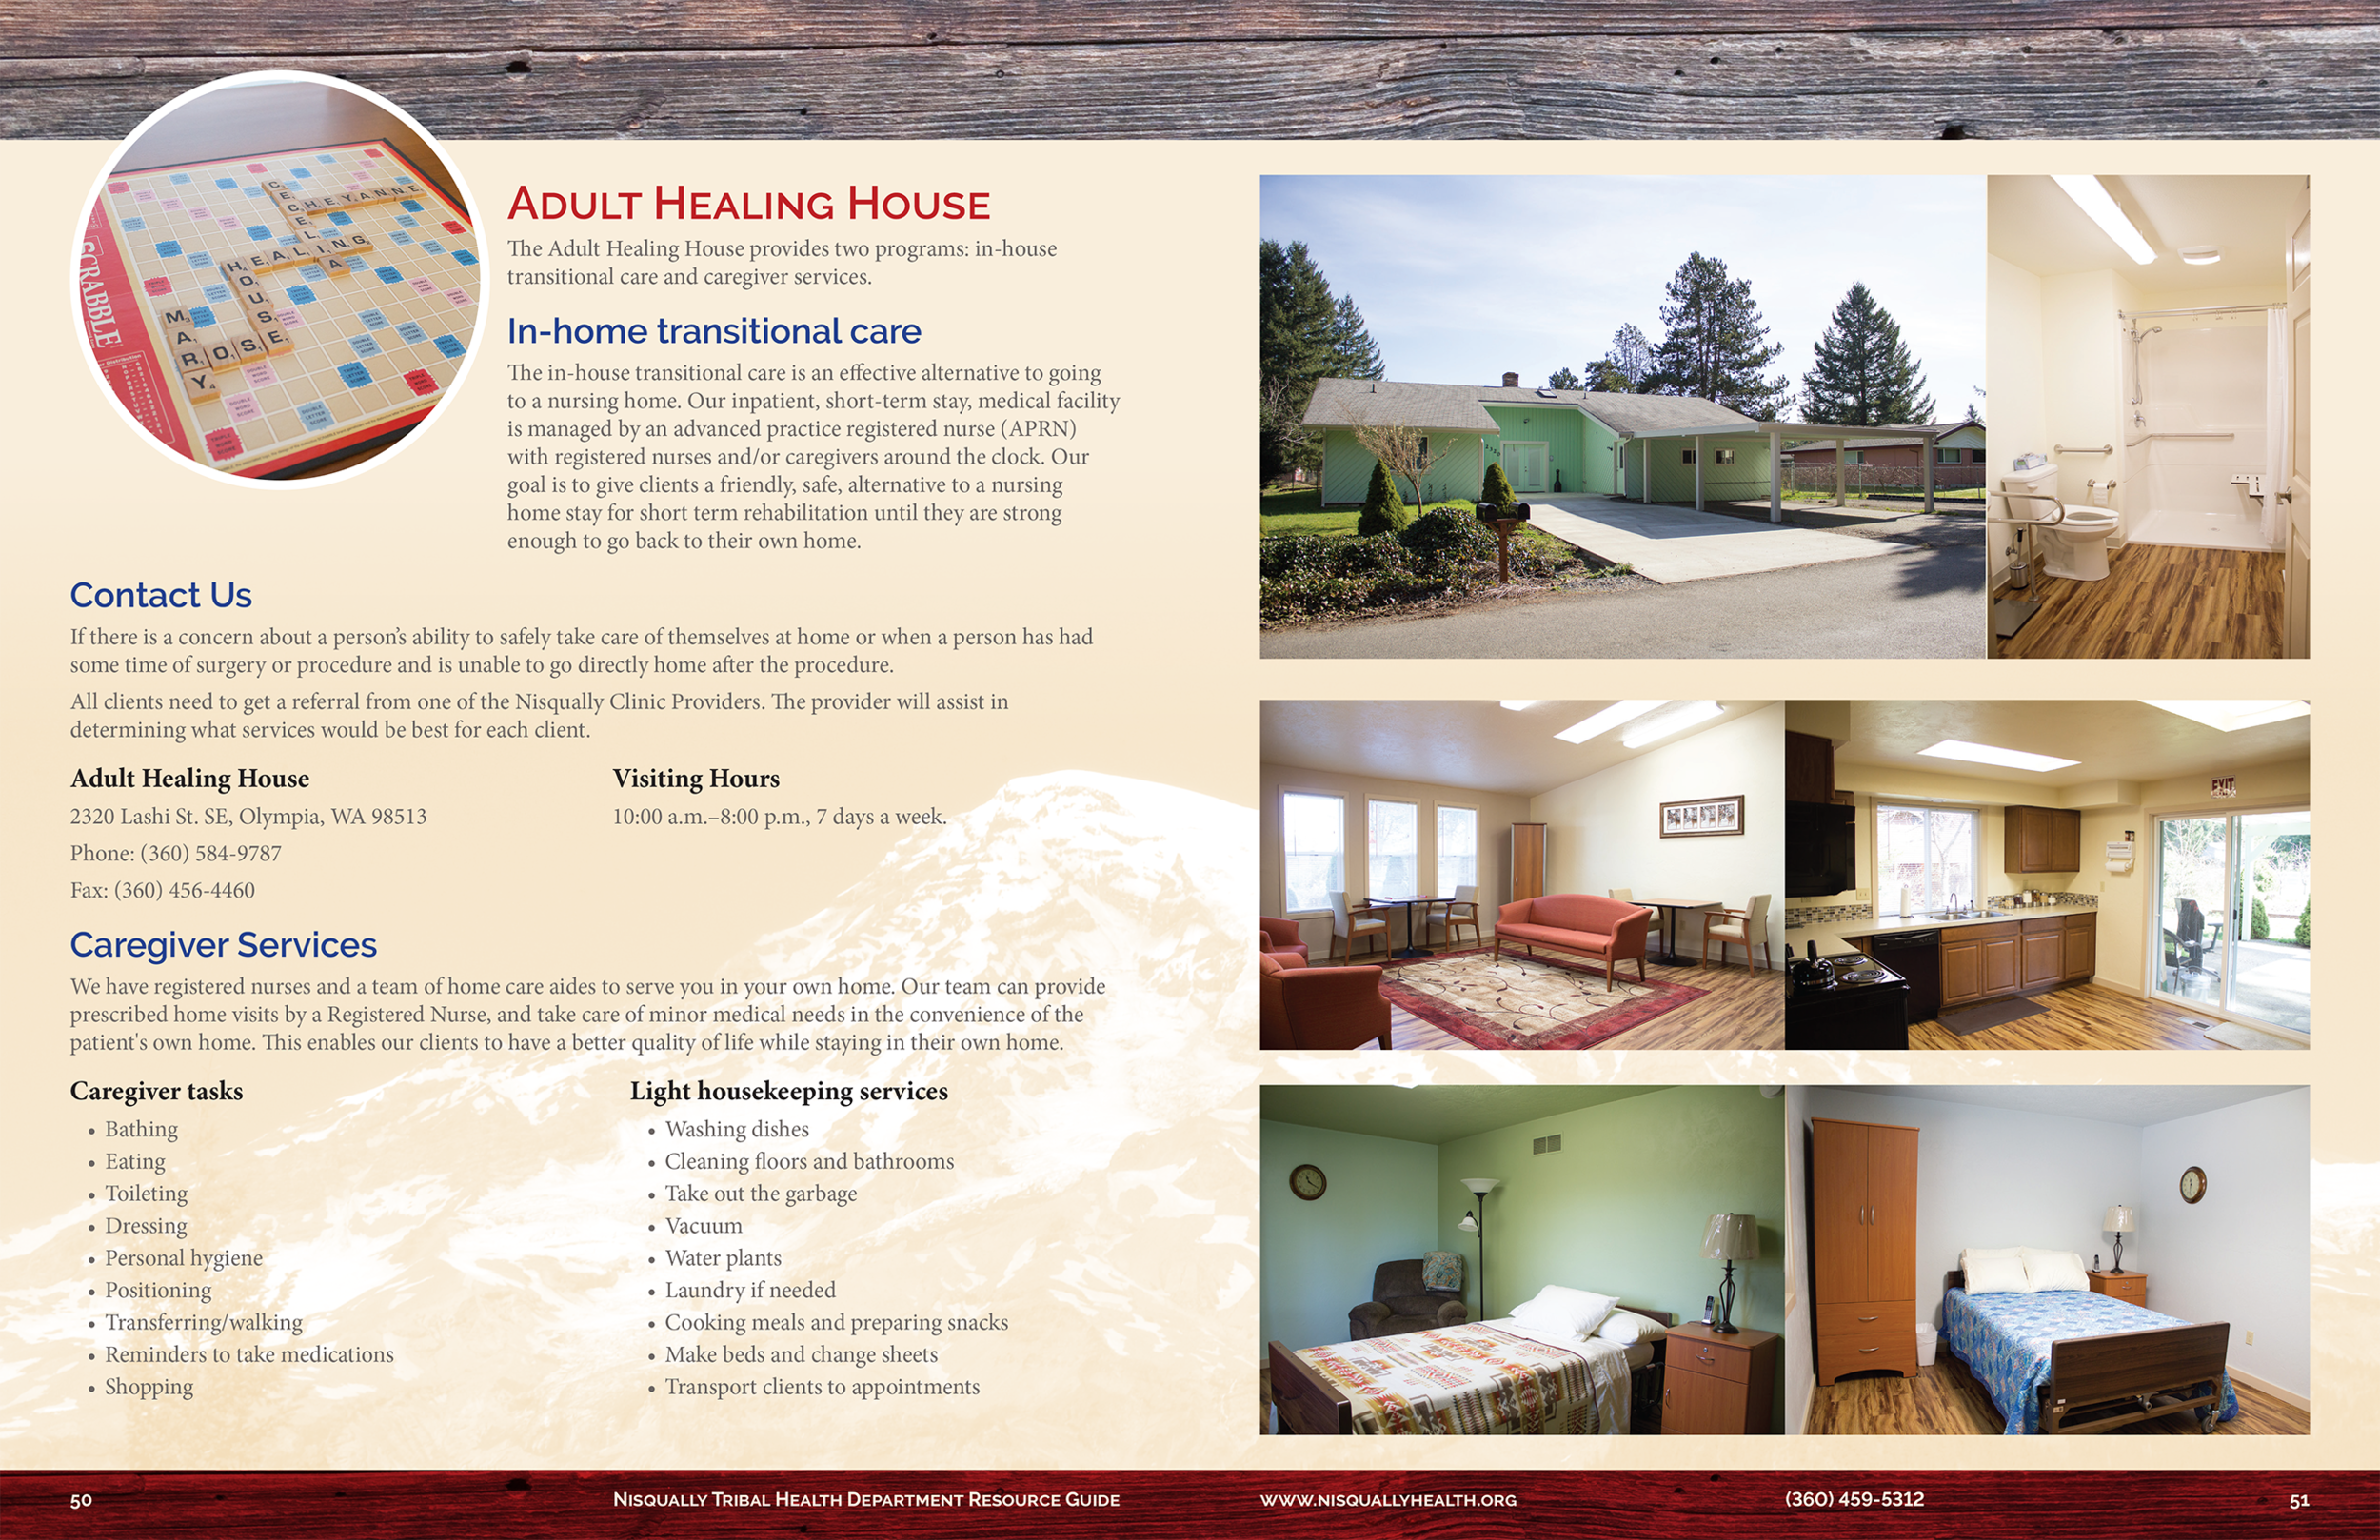 Nisqually Health Resource Guide 2016-26.png